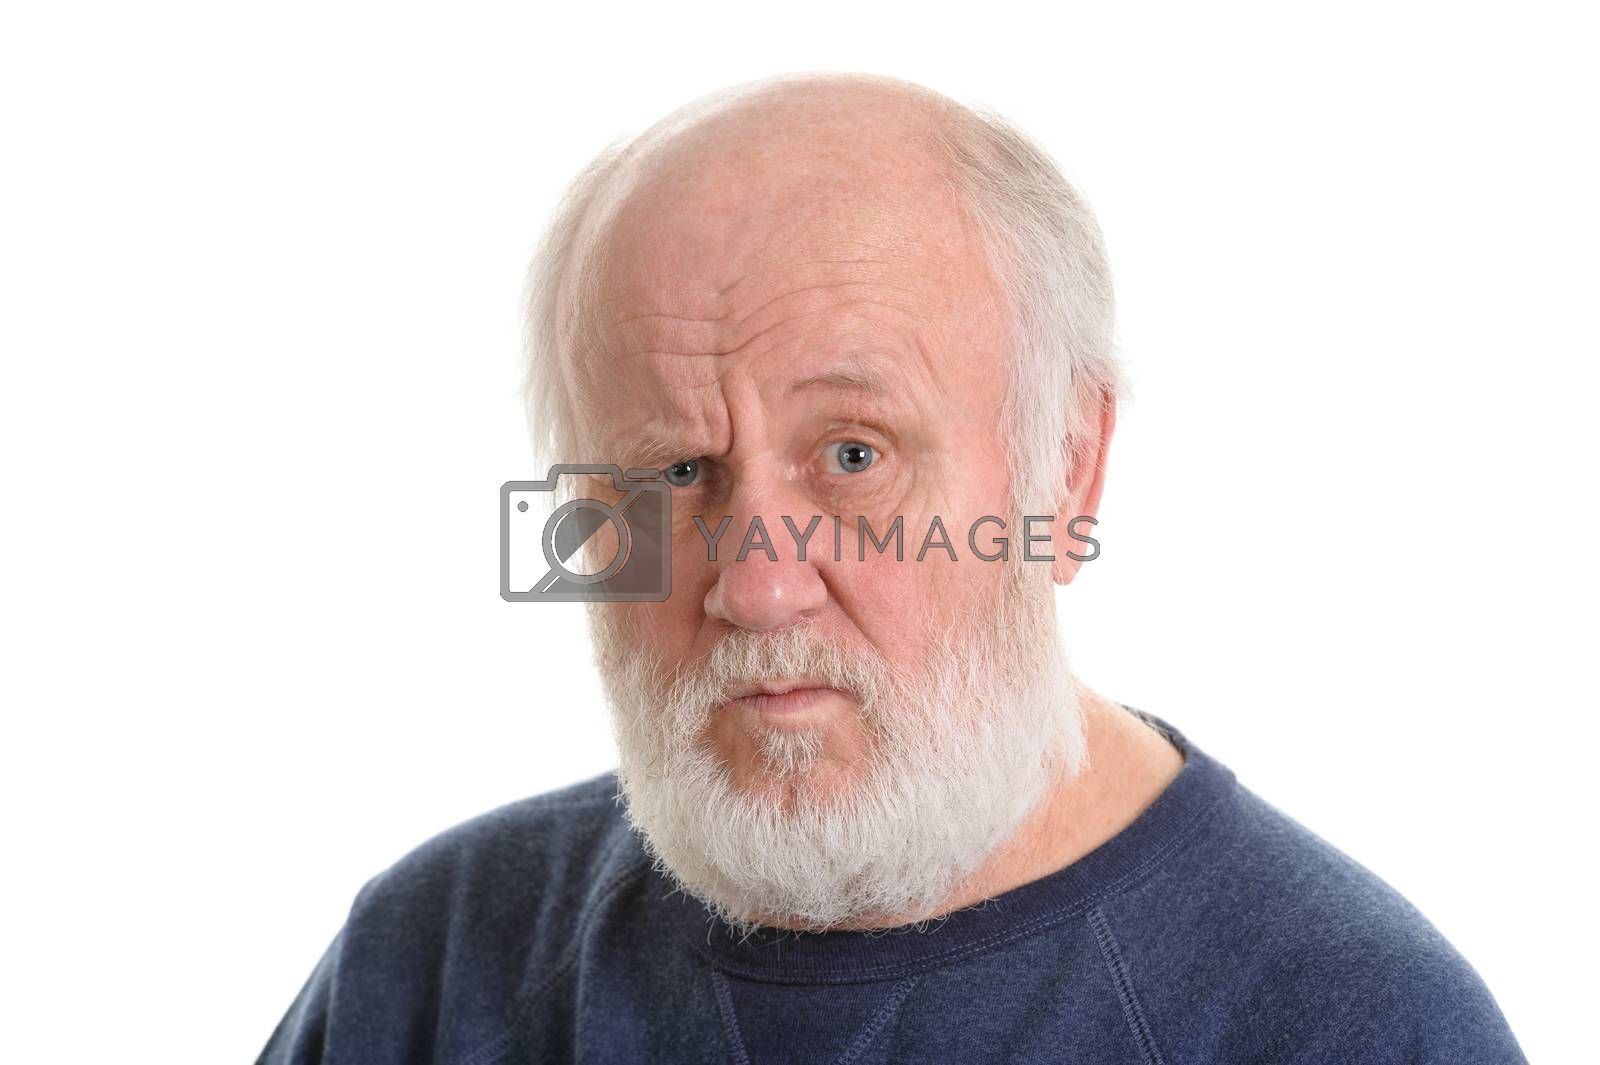 dissatisfied and displeased old bald man isolated portrait isolated on white